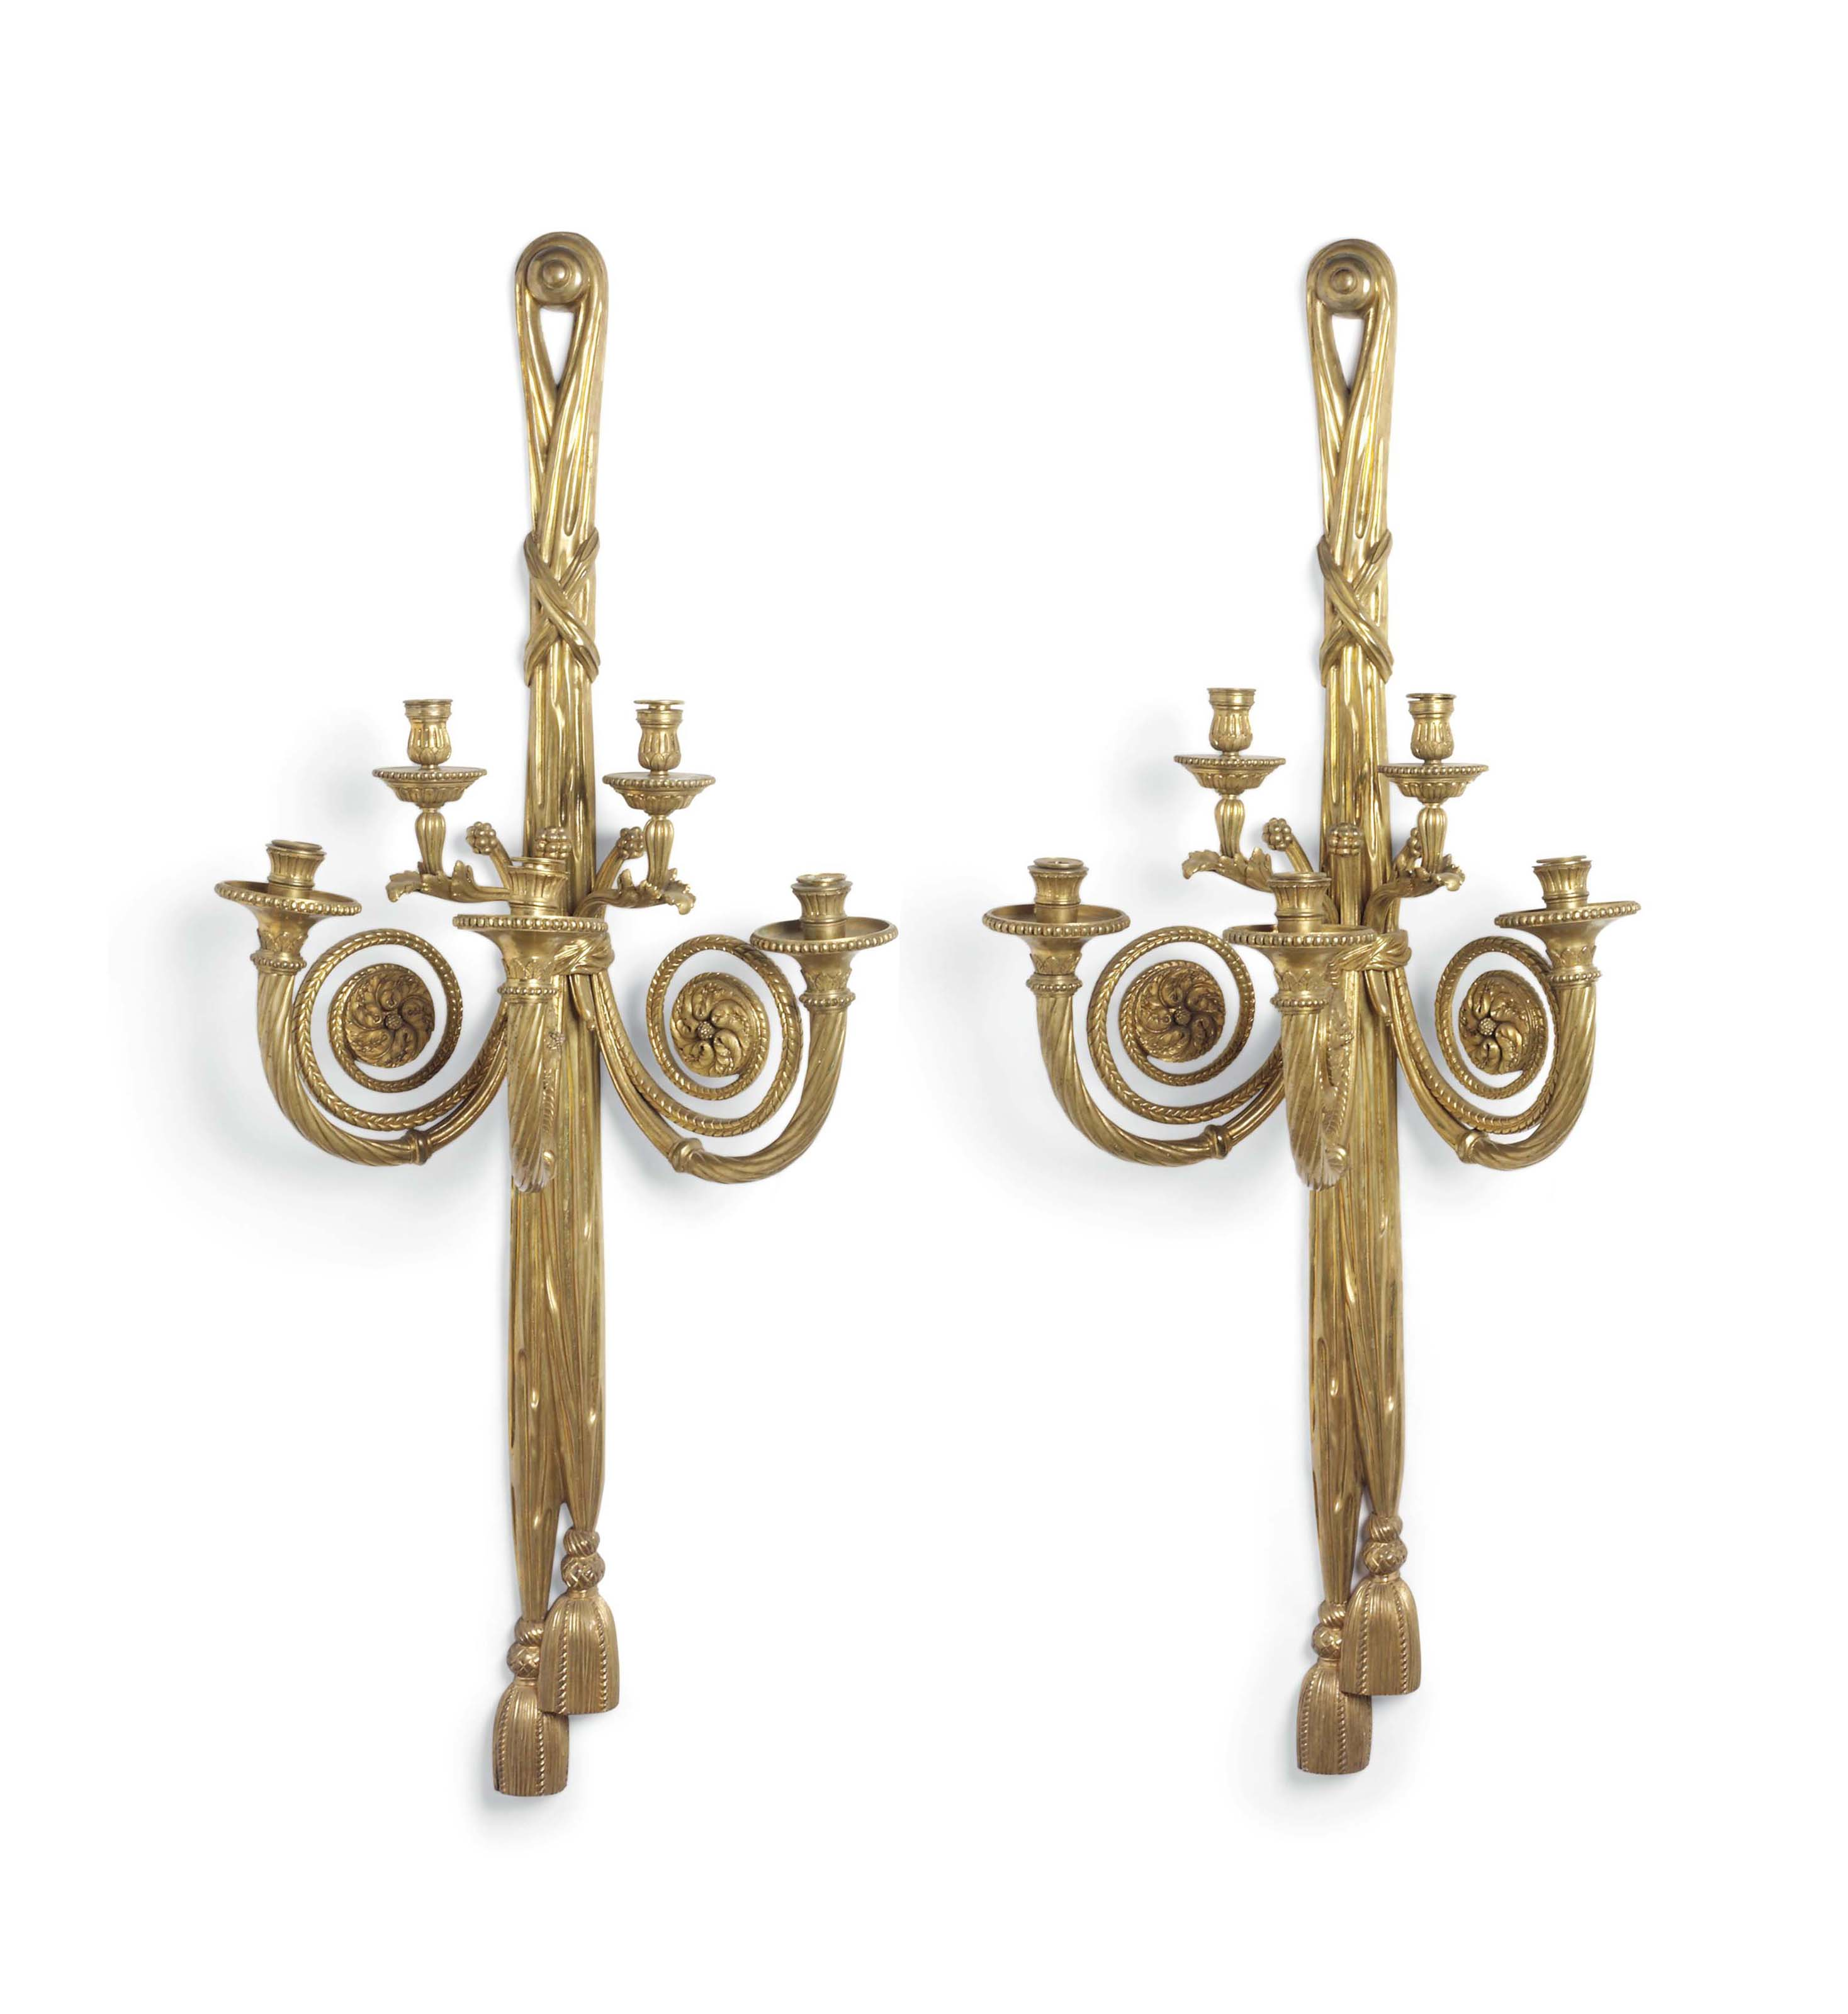 A PAIR OF VERY LARGE GILT-BRON